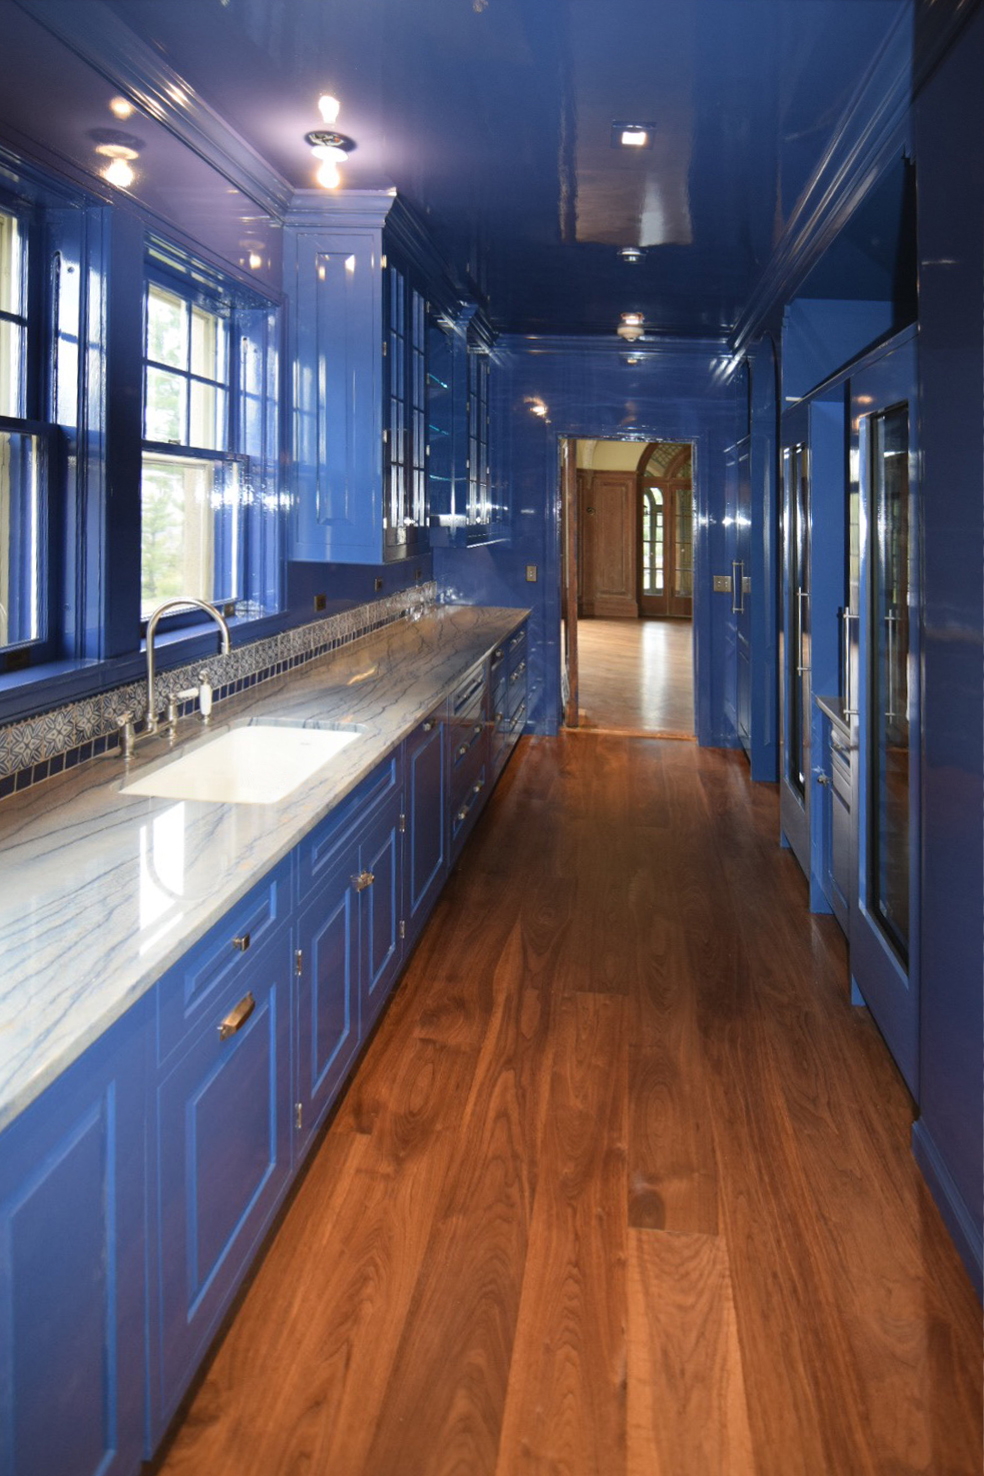 butlers-pantry-kitchen-face-frame-with-inset-raised-panel-hard-maple-doors-and-custom-mouldings-and-floor-to-ceiling-high-gloss-finish-2.jpg